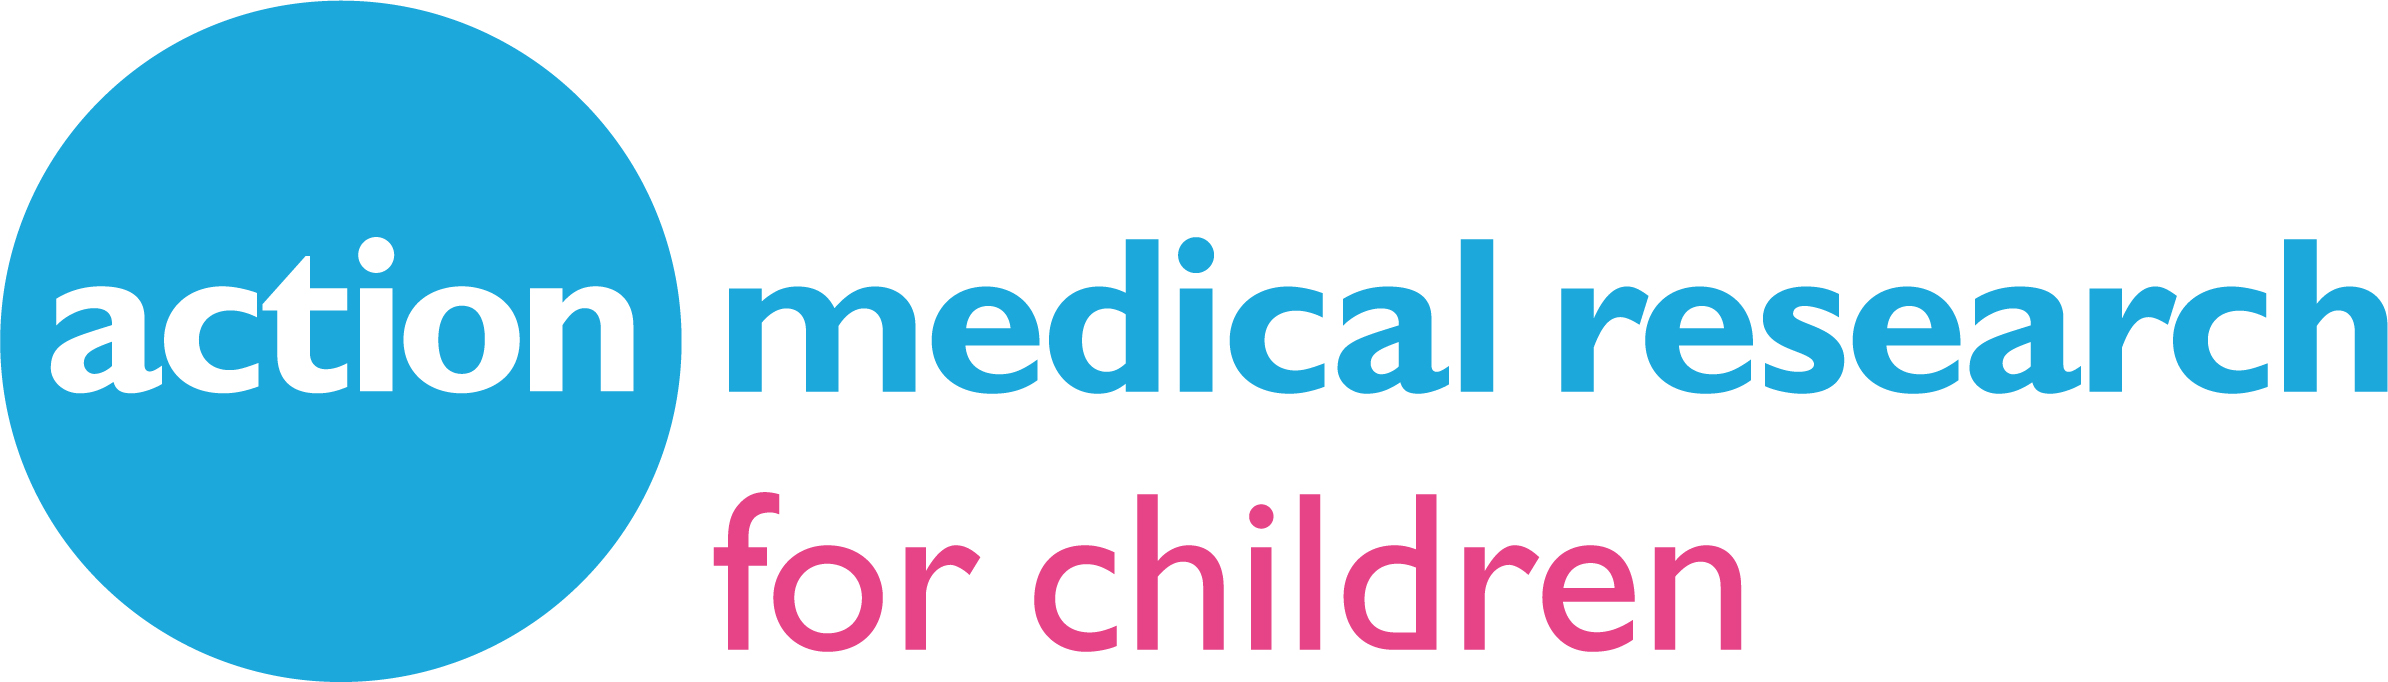 Child Medical Research